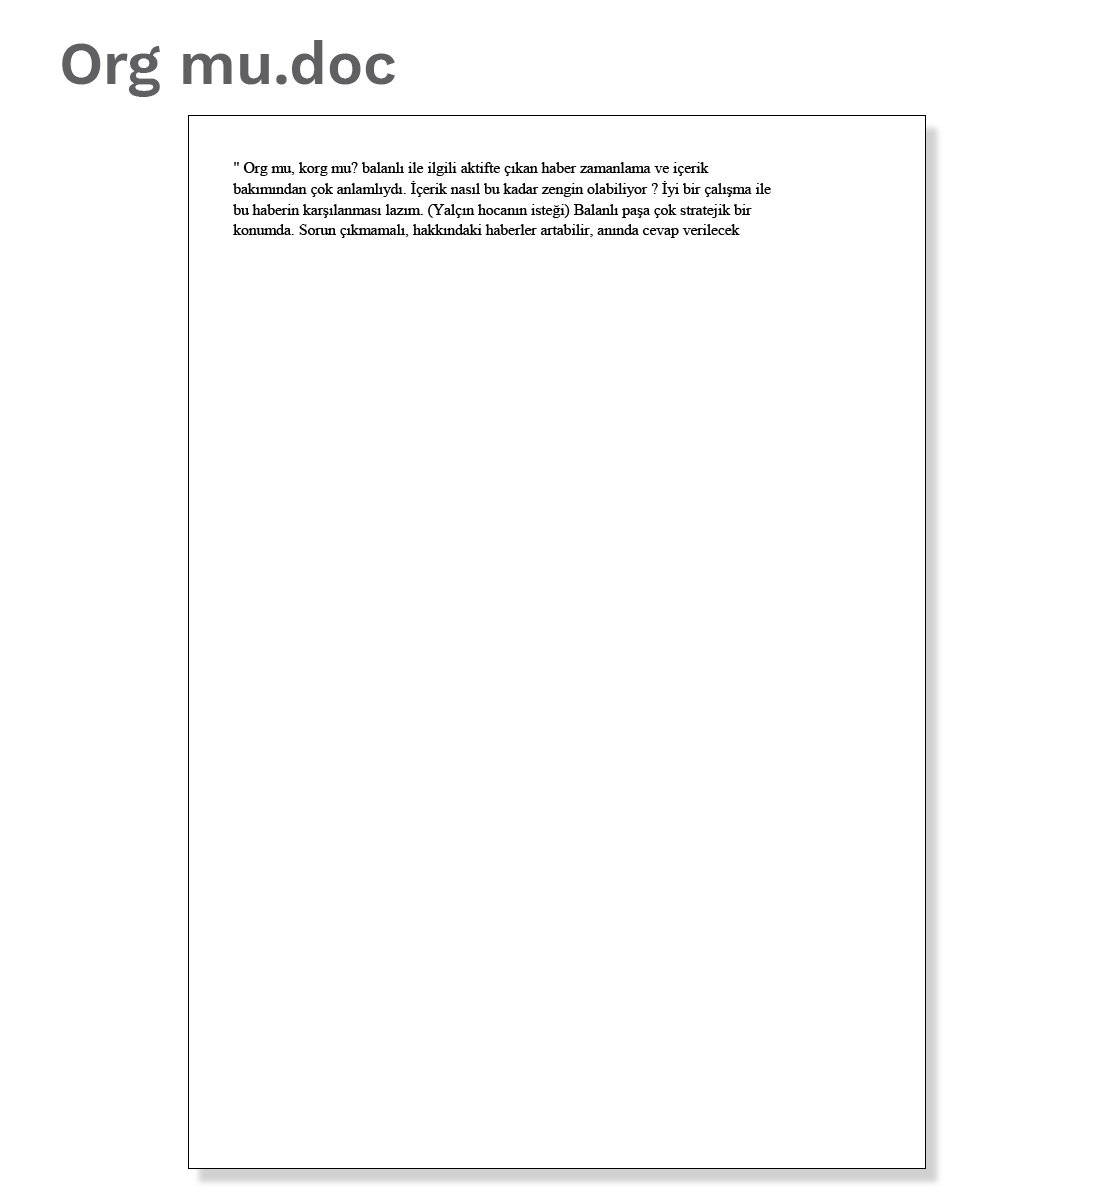 Document 5: Org mu.doc